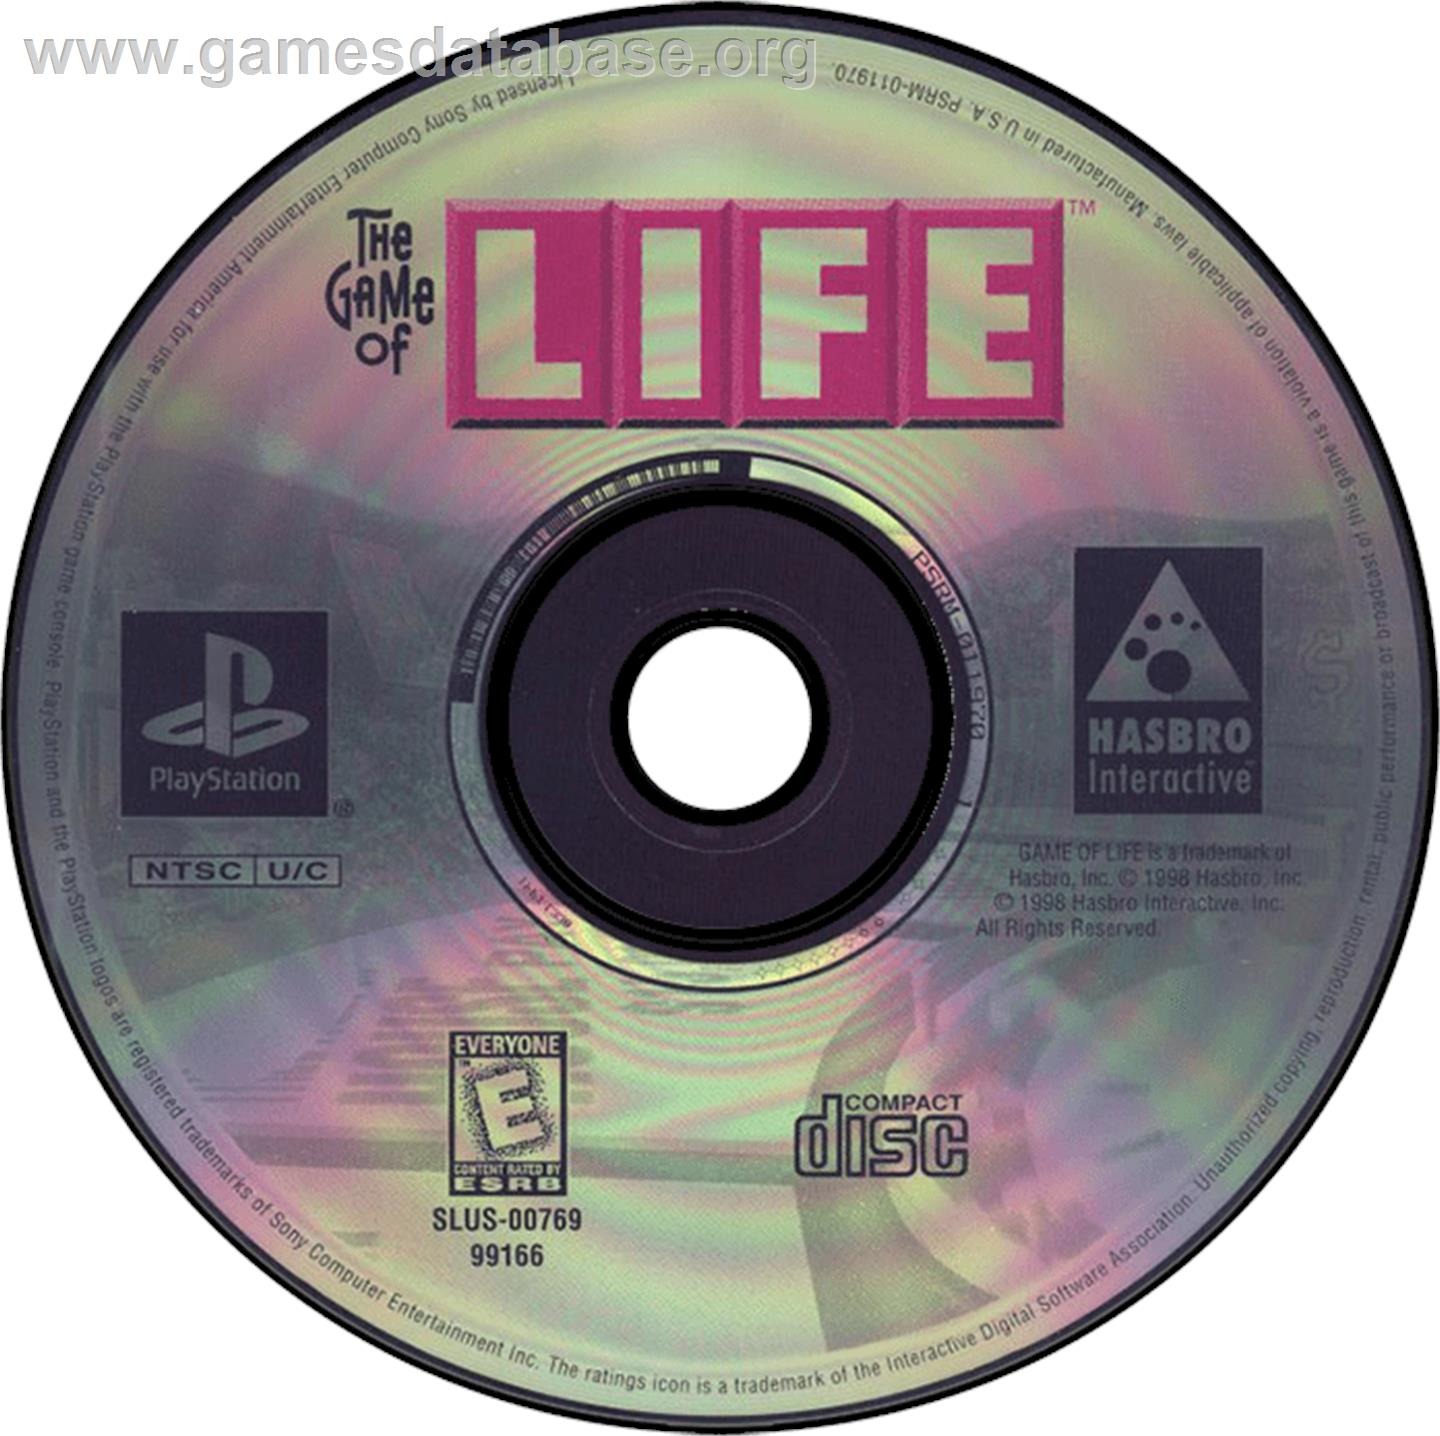 The Game of Life - Sony Playstation - Artwork - CD